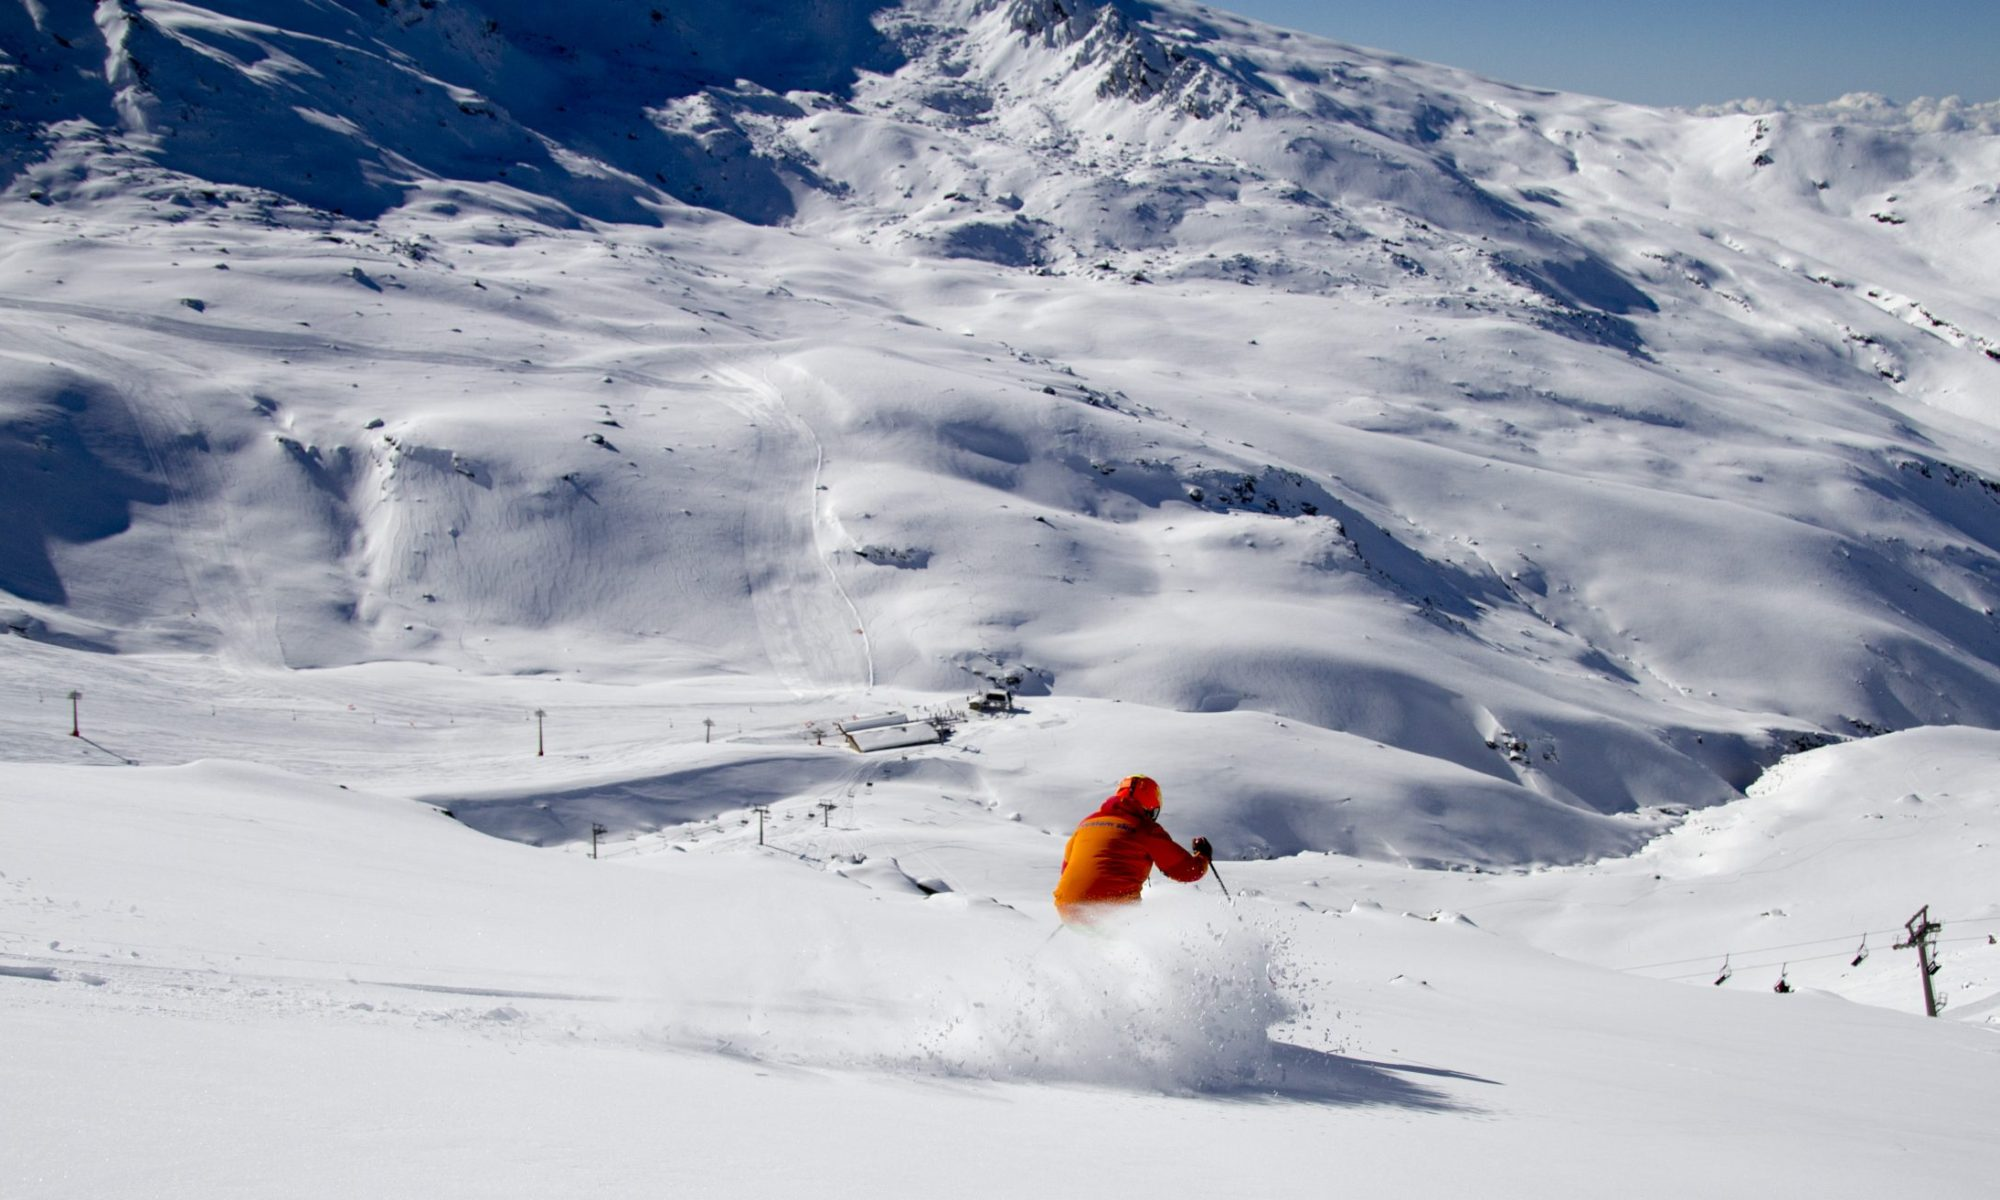 Archive Cetursa Sierra Nevada.Sierra Nevada: Cetursa approves an investment of 10 million for the next season and addresses the installation of a new ski lift.